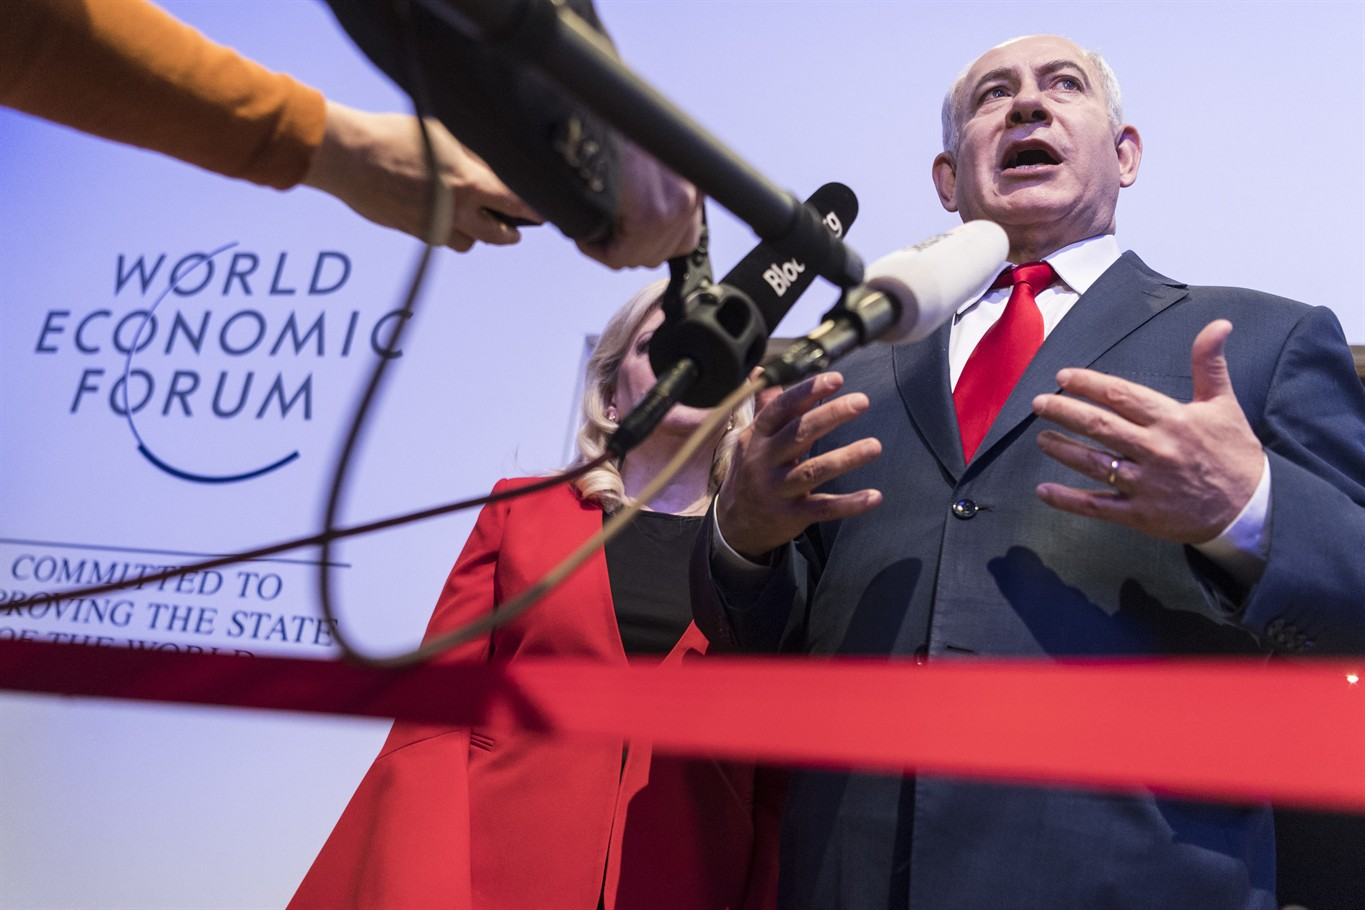 Do not test Israel, Netanyahu tells Iran, brandishing drone piece